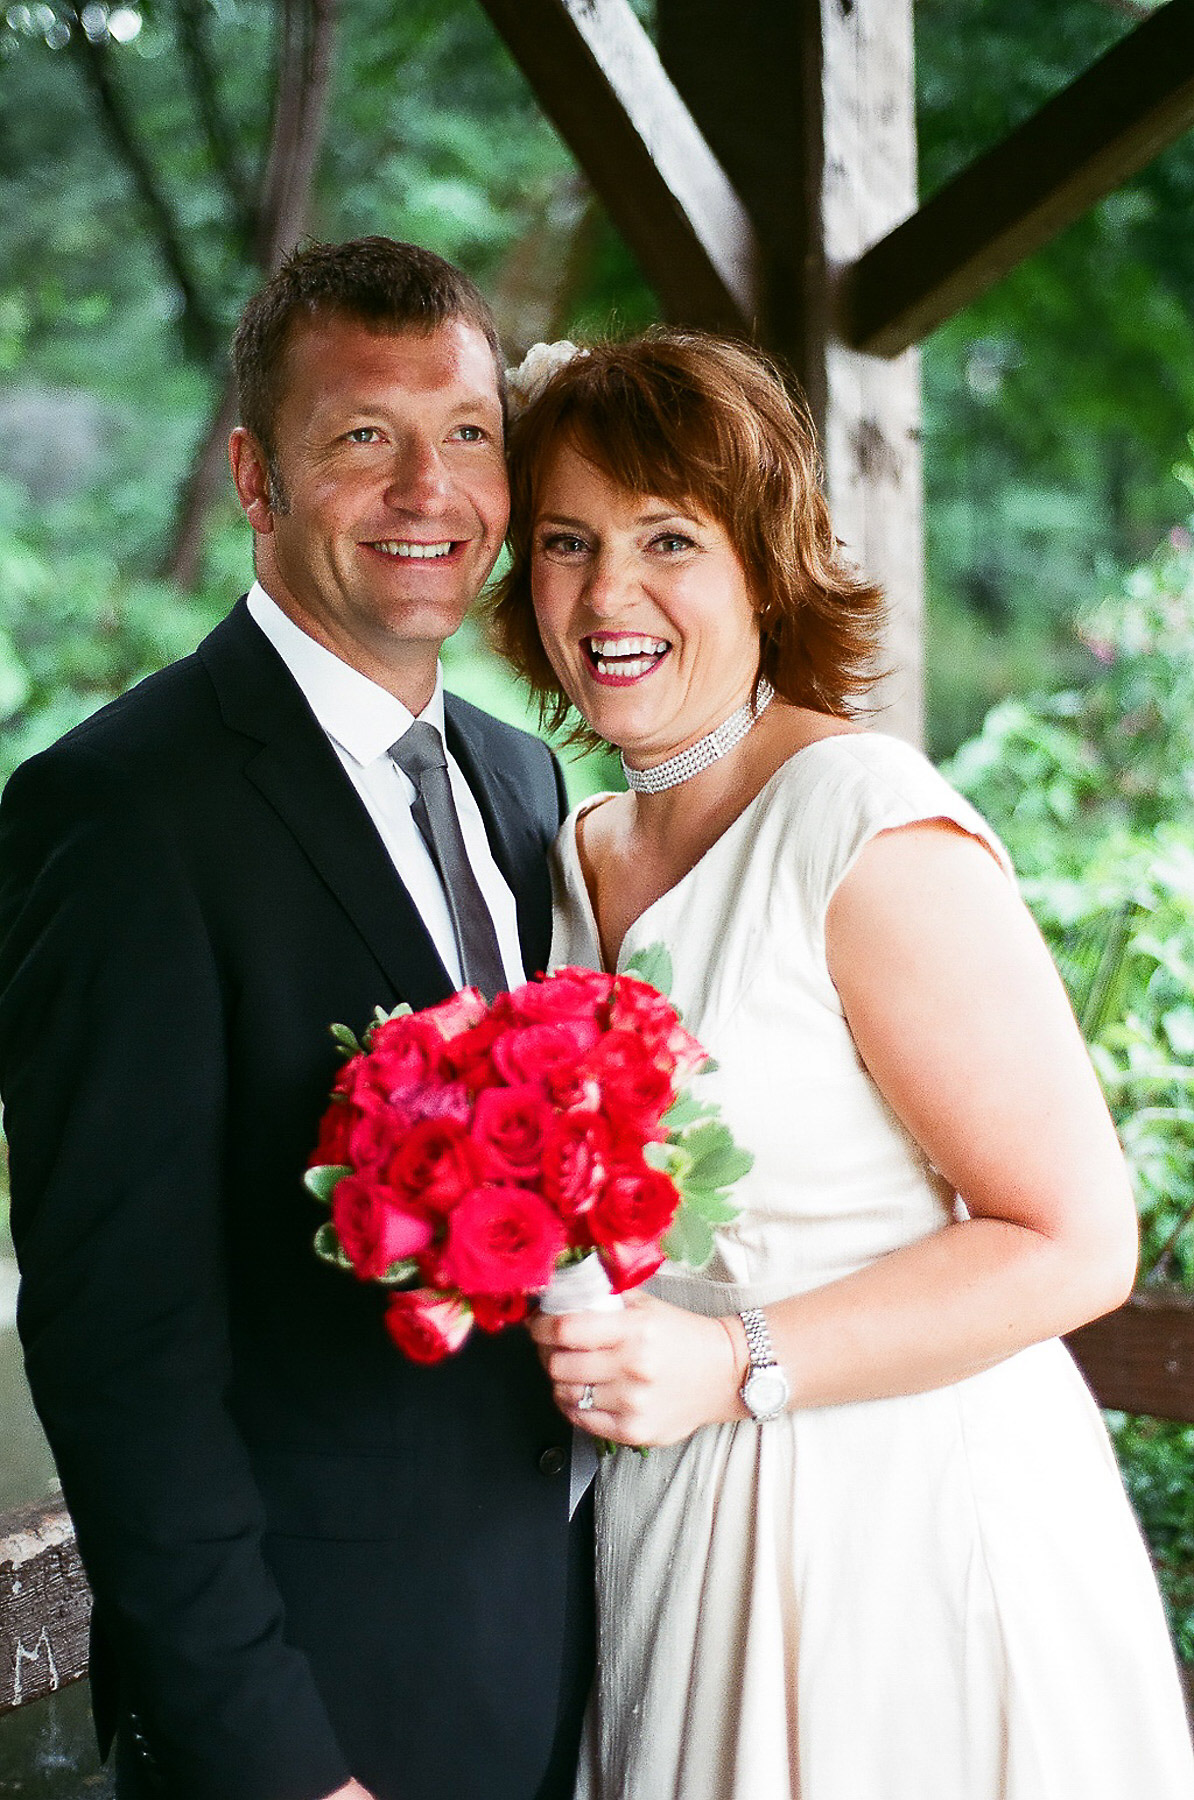 elopement wedding day photo of couple smiling by wendy g photography